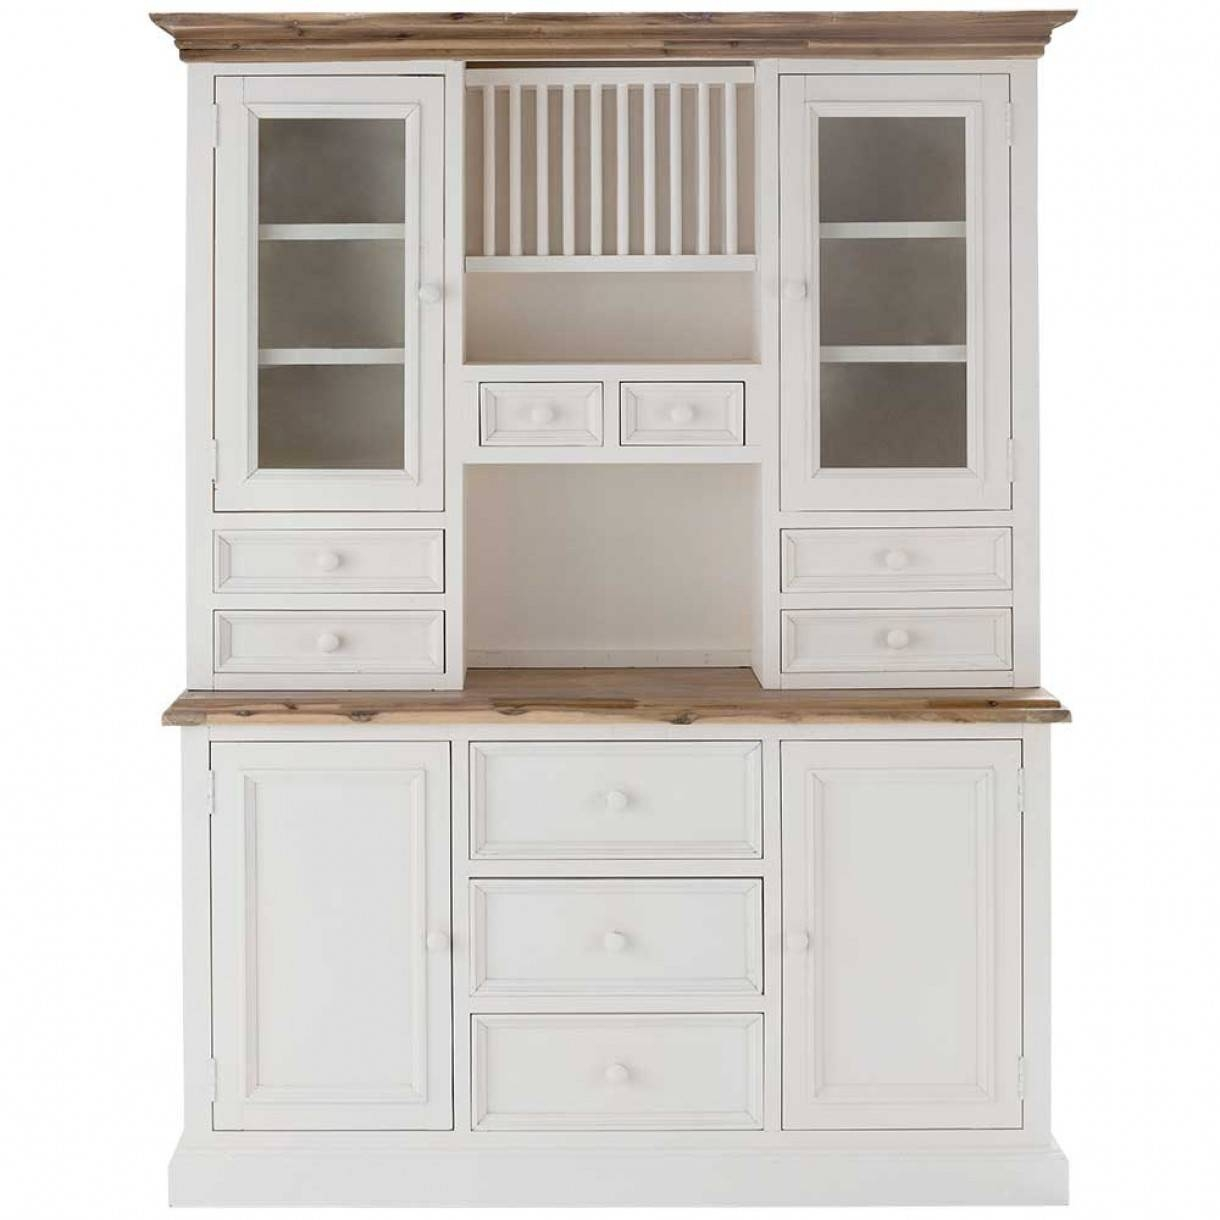 Buy Buffets And Sideboards Online | Dining | Early Settler Furniture throughout White Sideboards For Sale (Image 2 of 30)